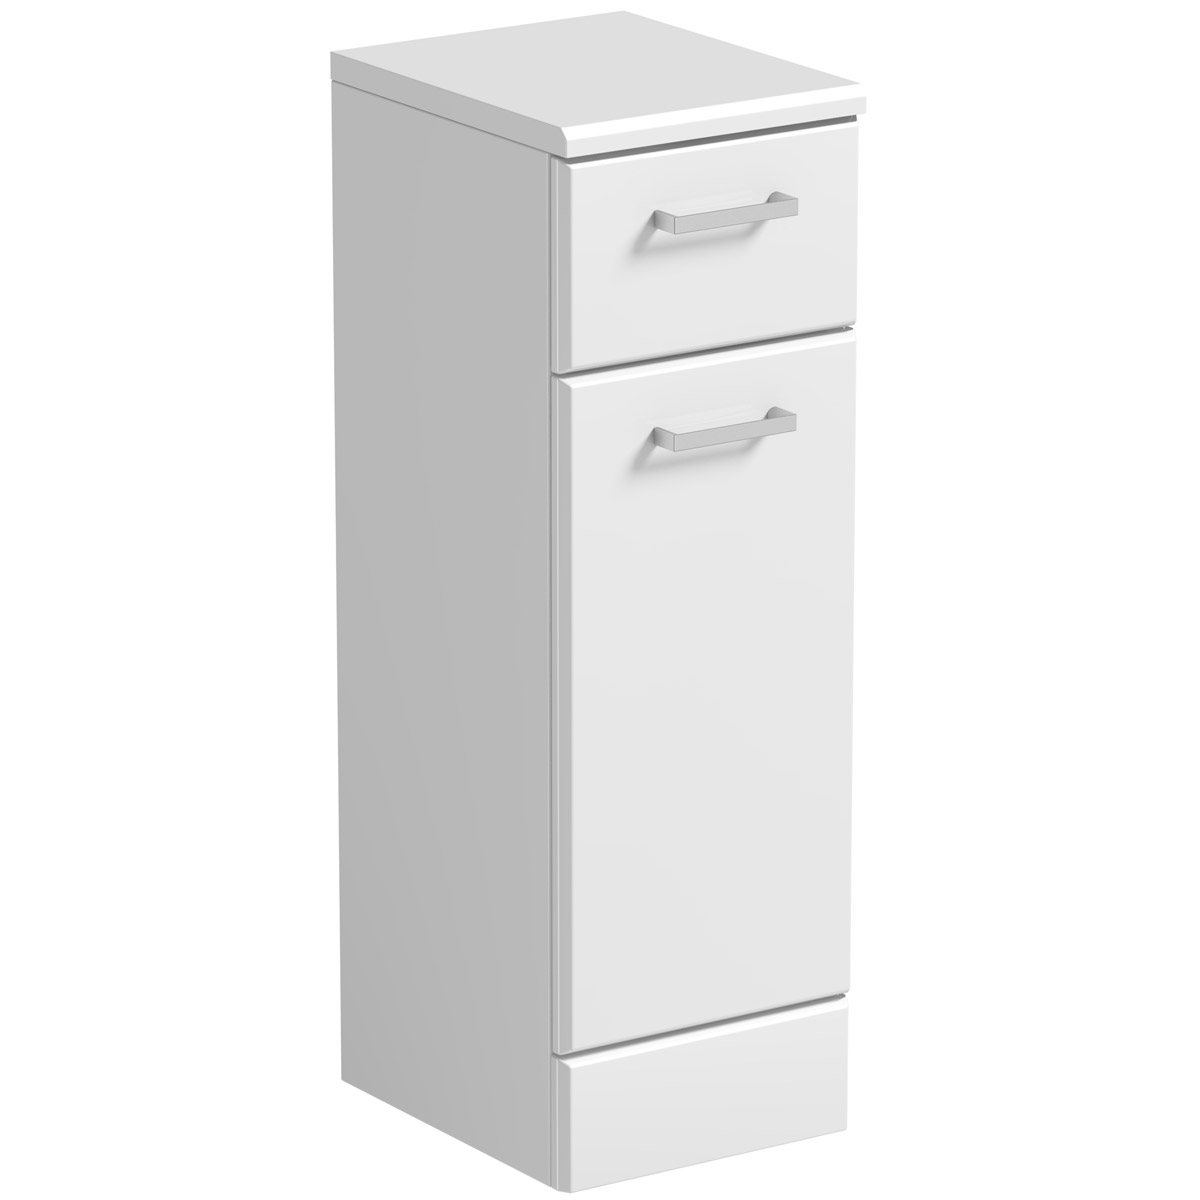 Unique white bathroom storage unit orchard eden white linen basket 300mm kusvgfw